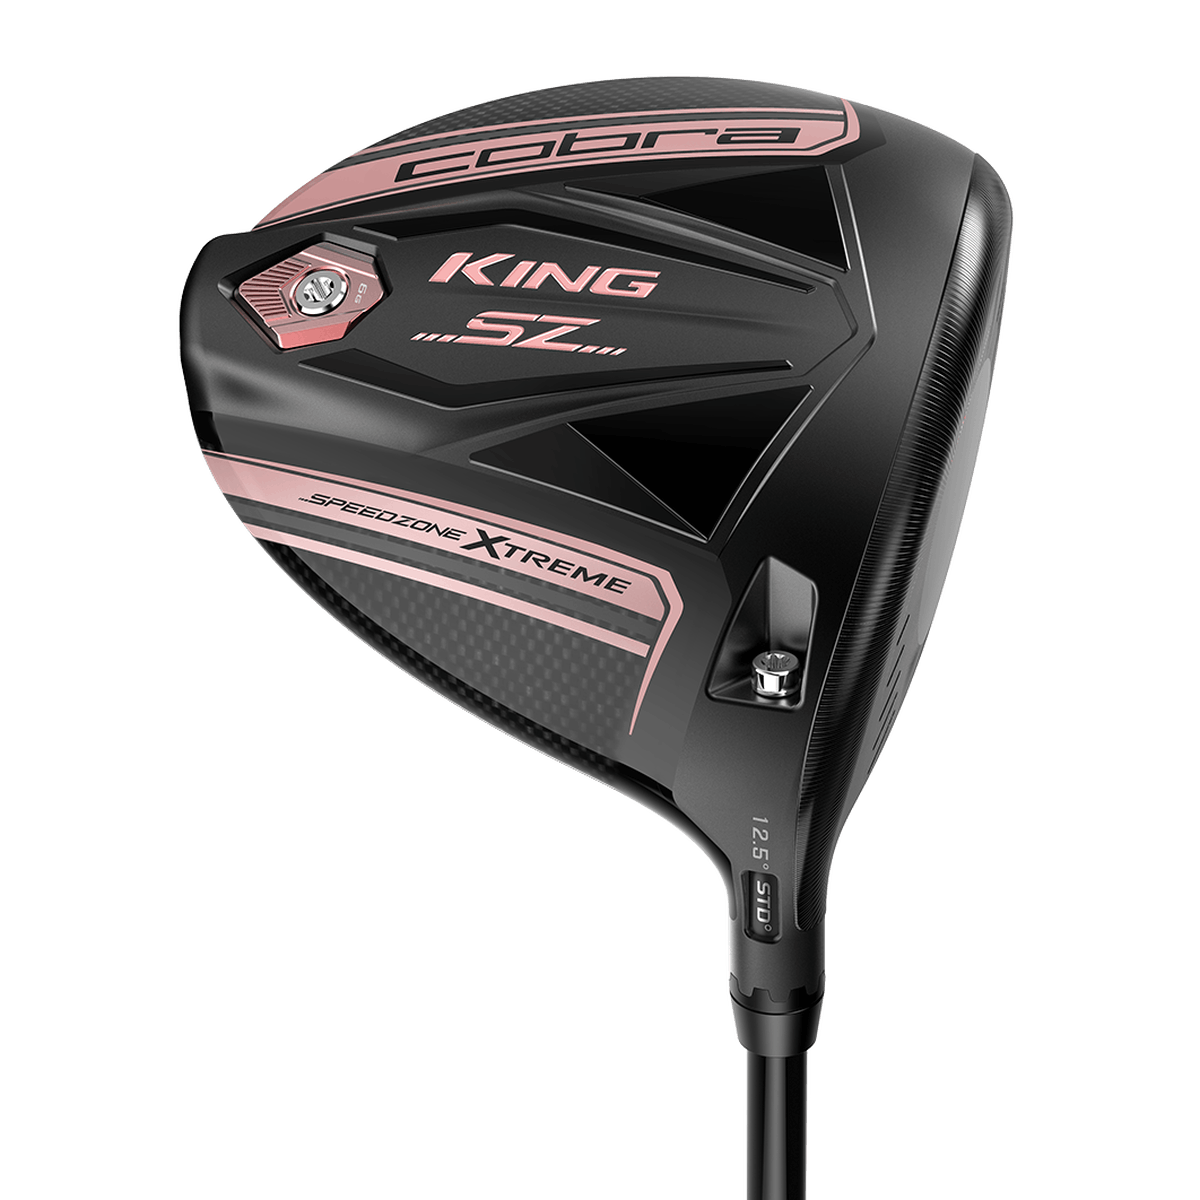 Cobra KING SpeedZone XTREME Women's Driver